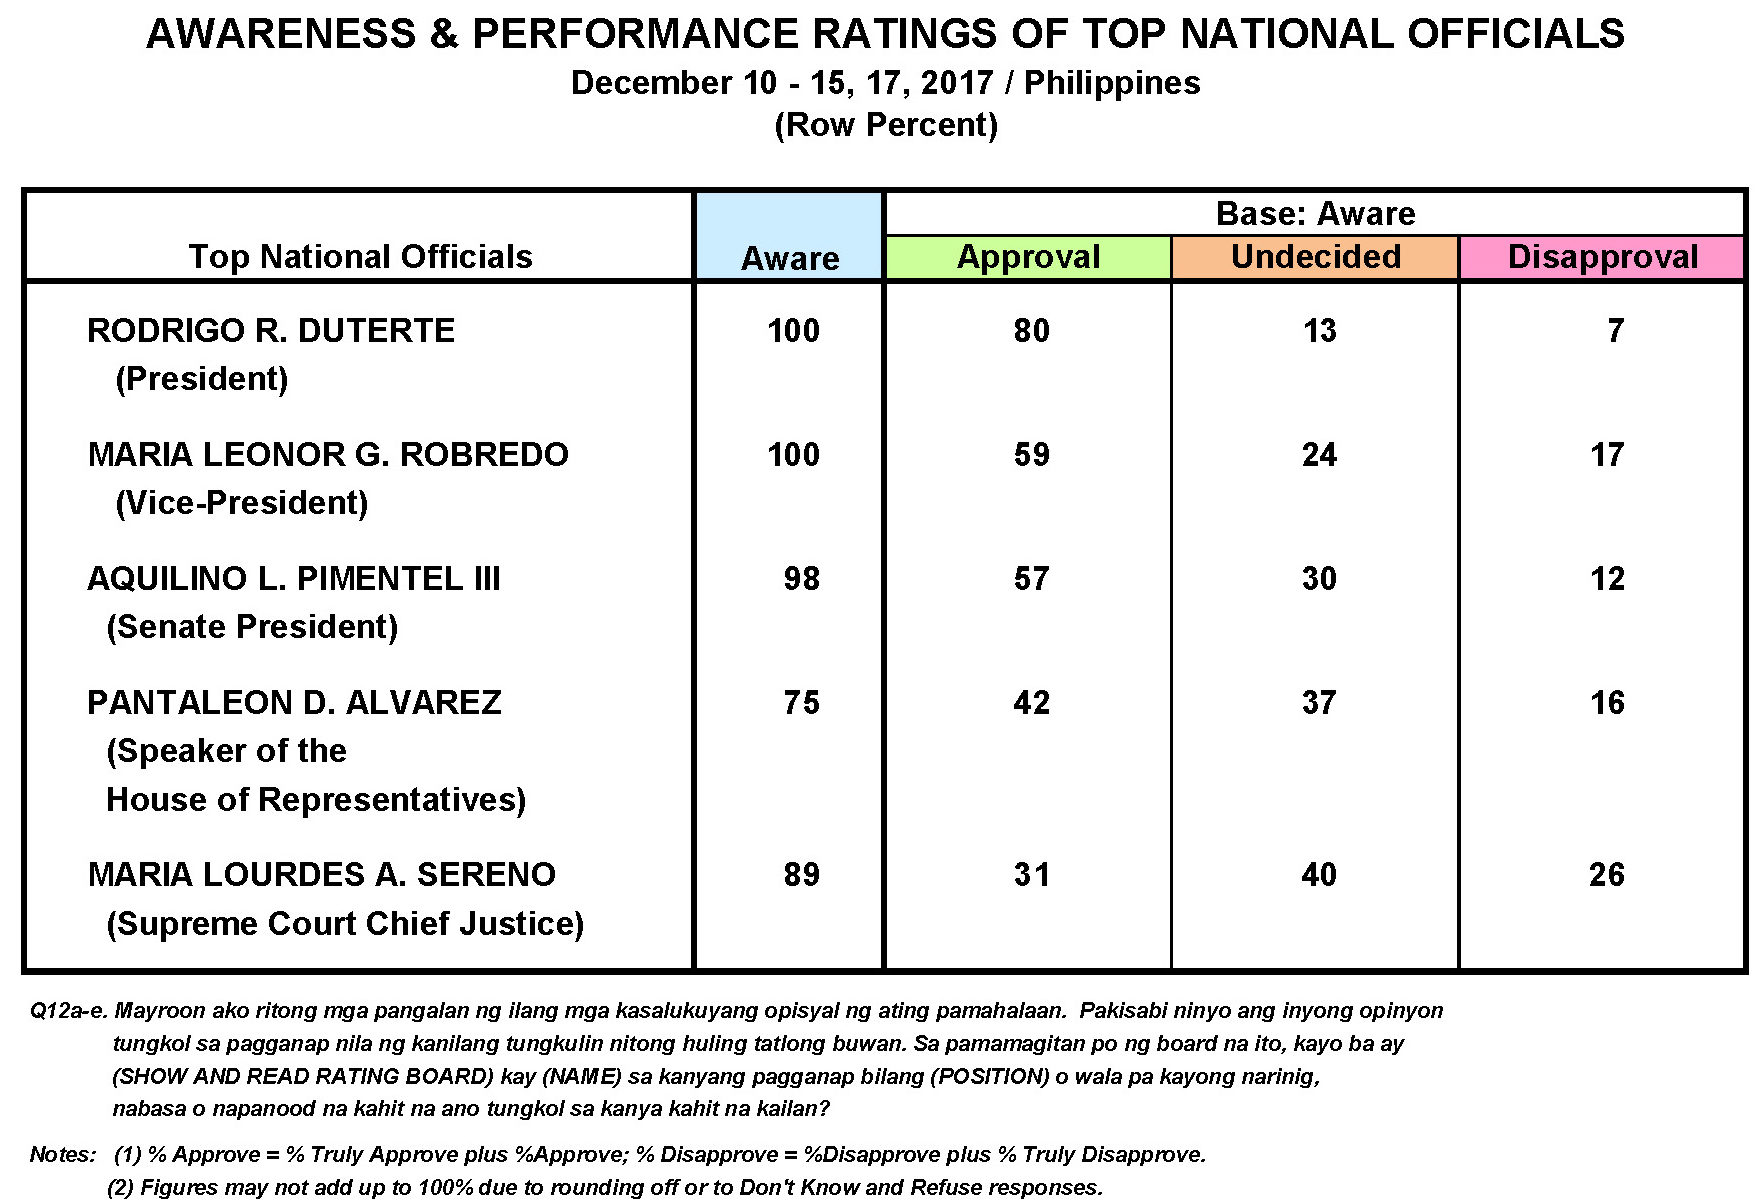 December 2017 Nationwide Survey on the Performance and Trust Ratings of the Top Philippine Government Officials and Key Government Institutions